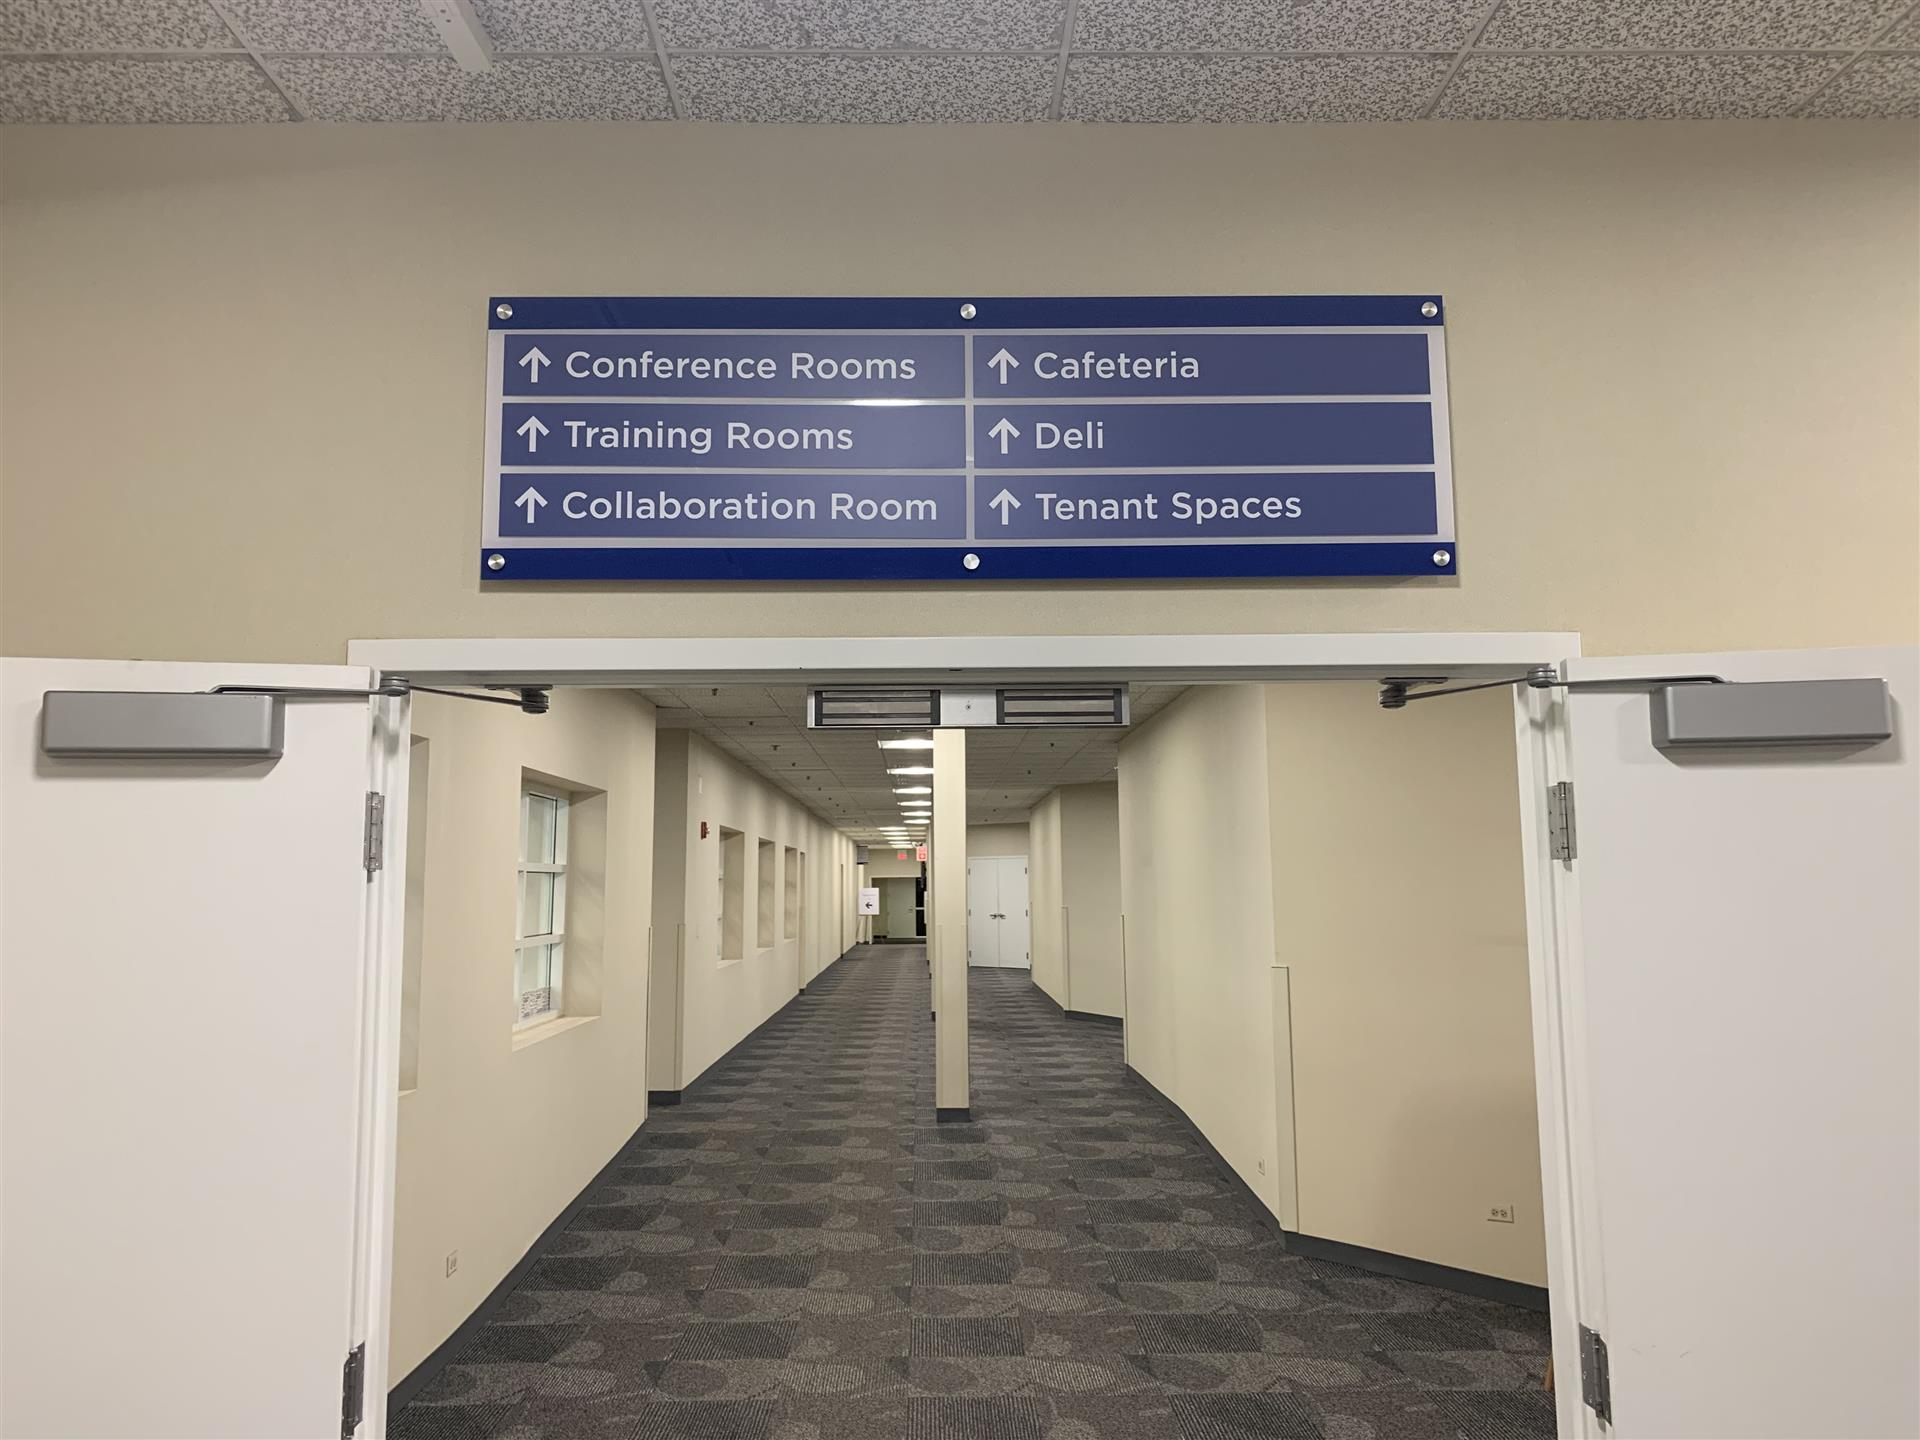 What are Wayfinding and ADA Signage?